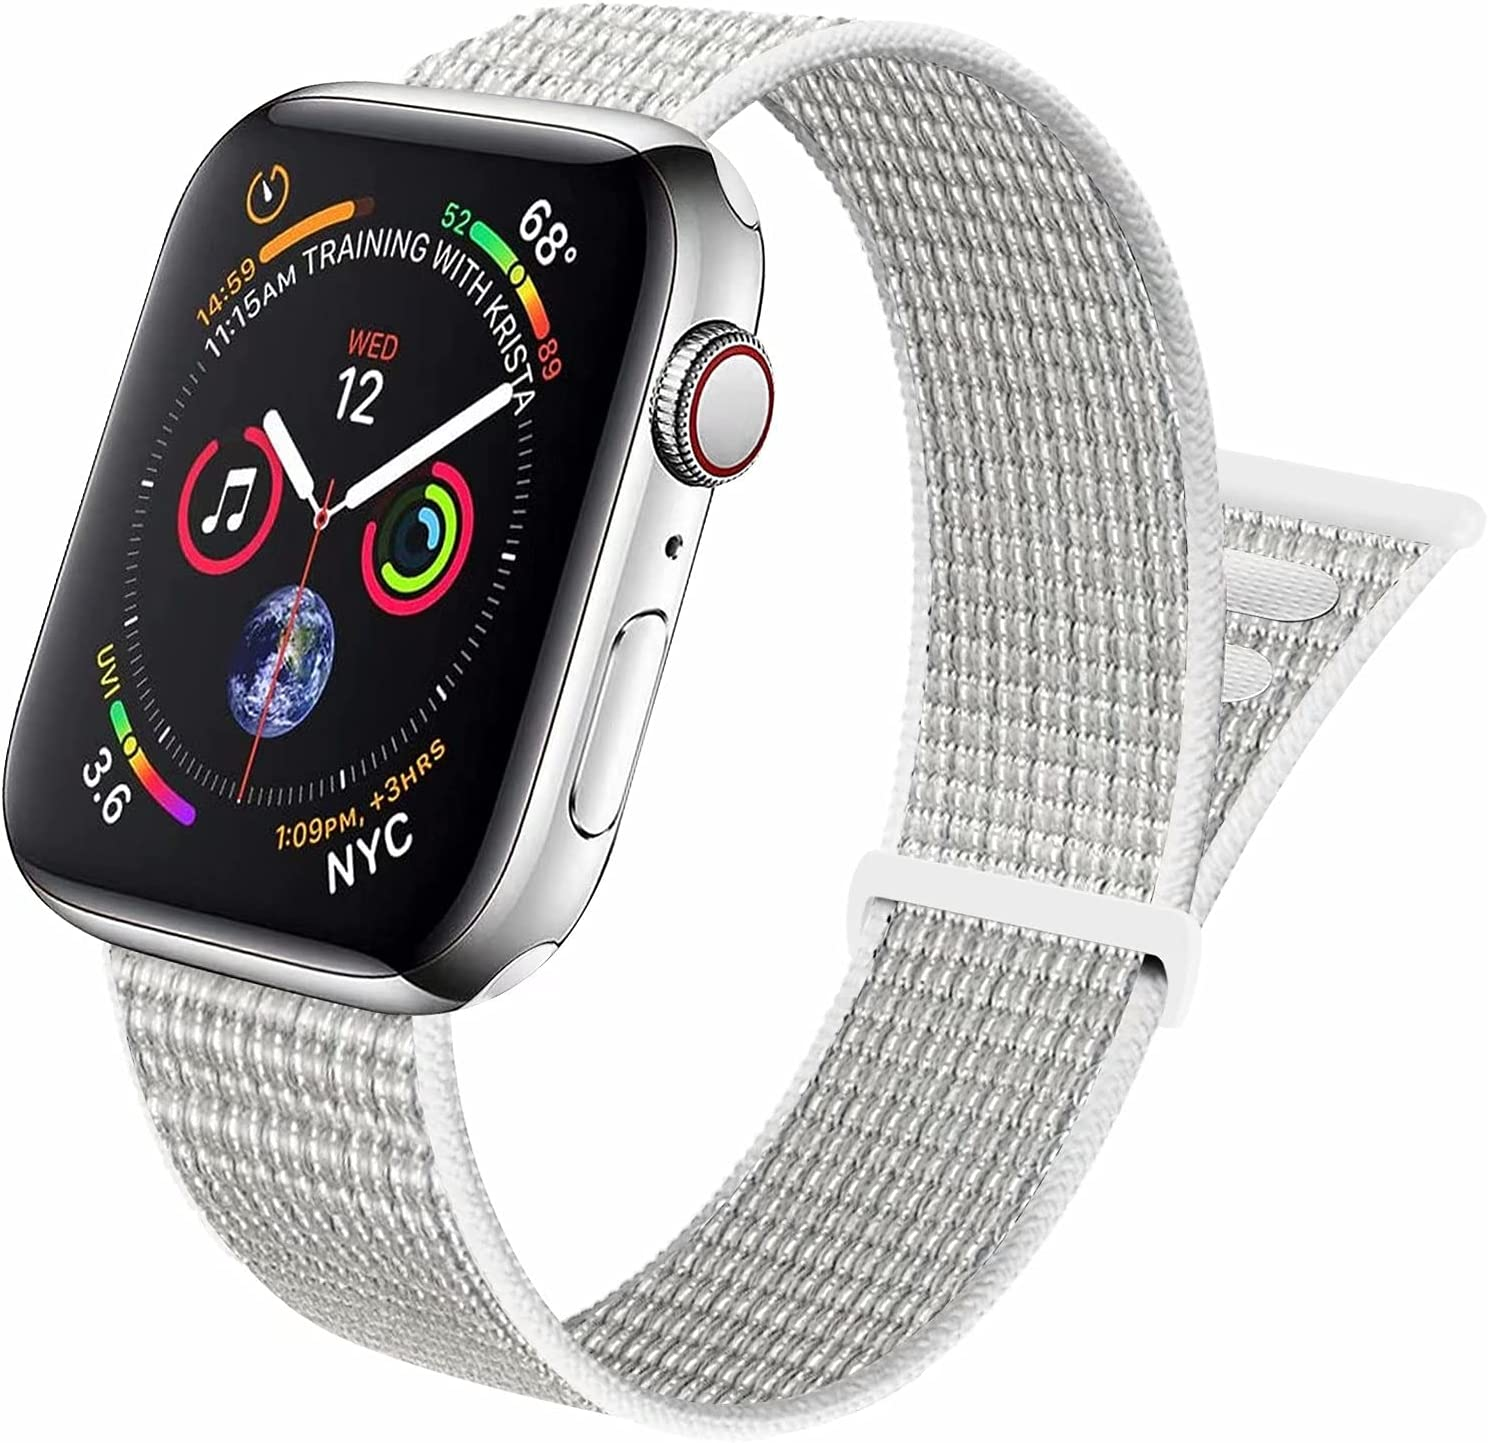 Aipeariful Nylon Solo Loop Compatible with Apple Watch Band 38mm 40mm 41mm 42mm 44mm 45mm,Women Men Adjustable Sport Braided Strap for iWatch Series SE/7/6/5/4/3/2/1,Seashell,38/40/41mm